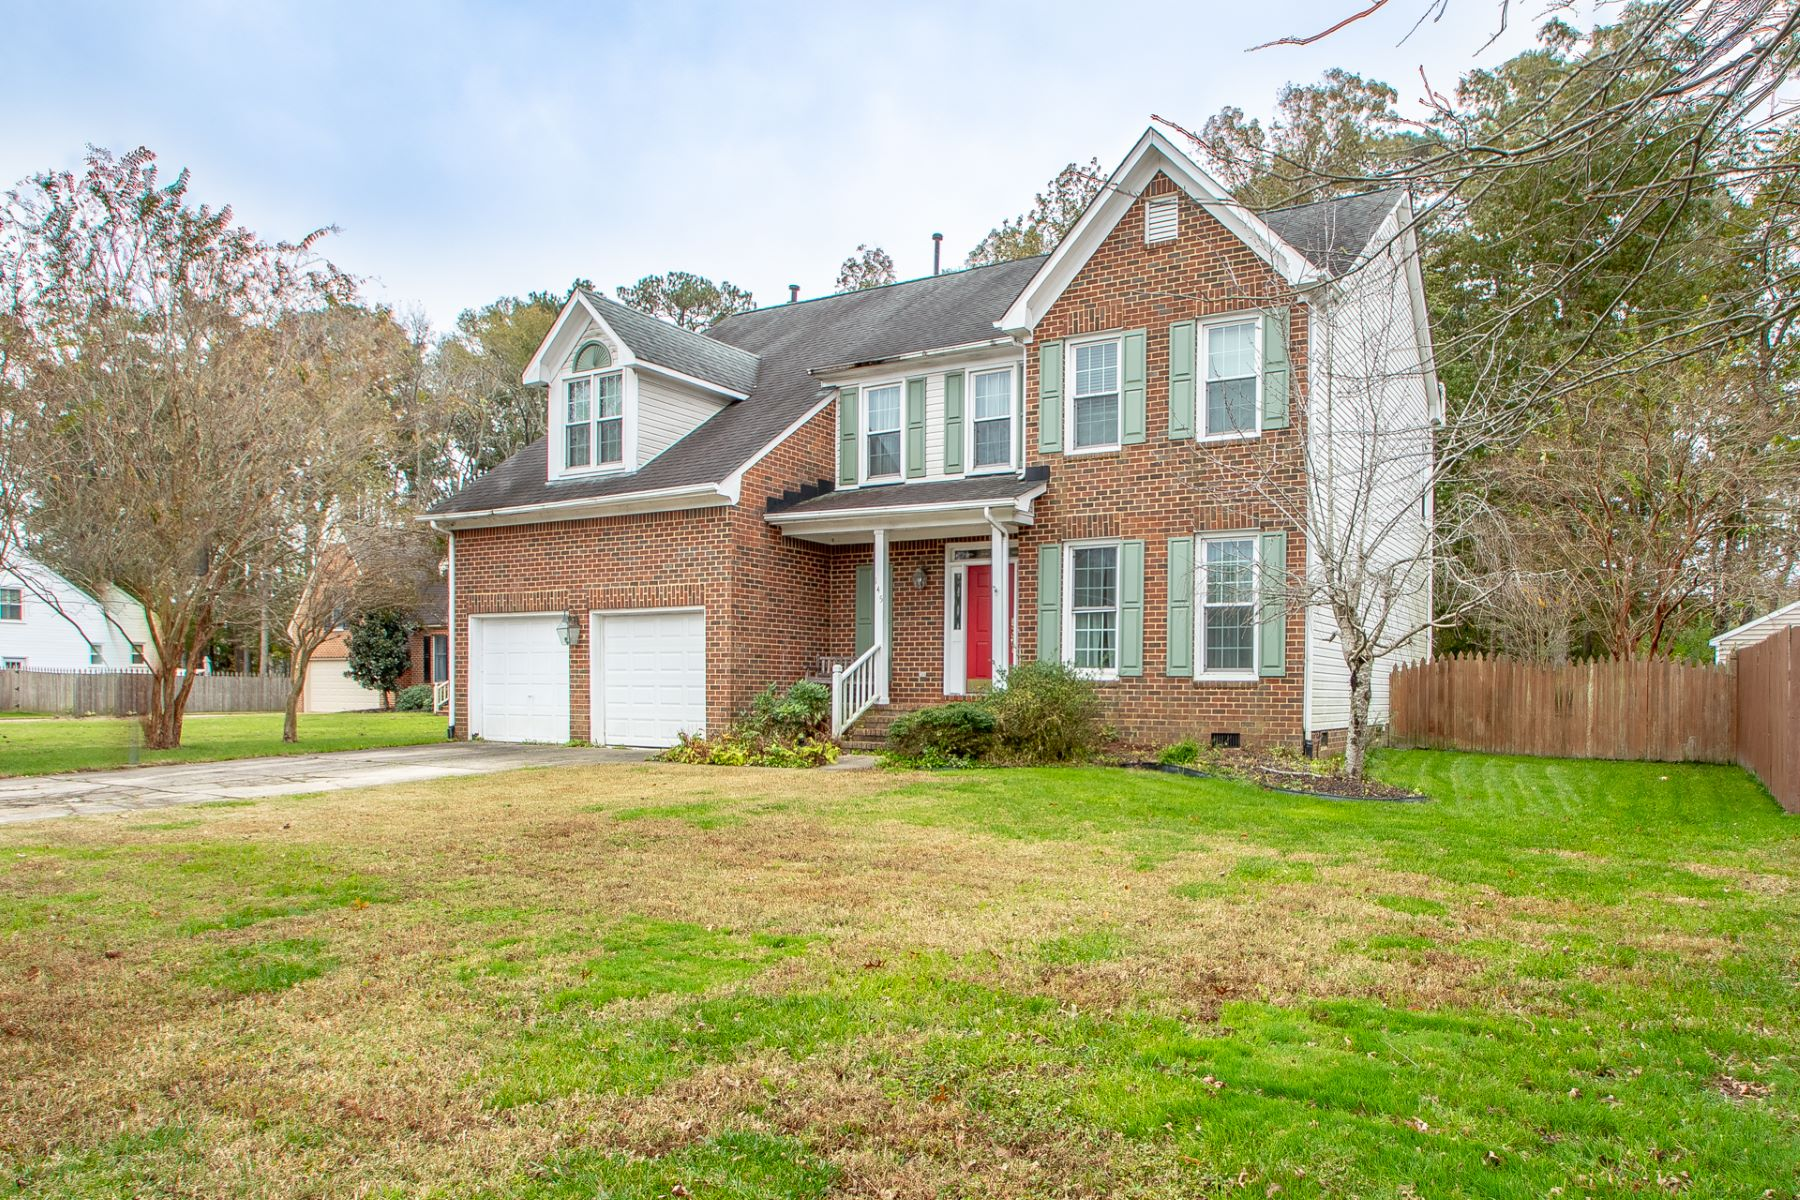 Single Family Homes for Sale at 145 Country Club Boulevard Chesapeake, Virginia 23322 United States